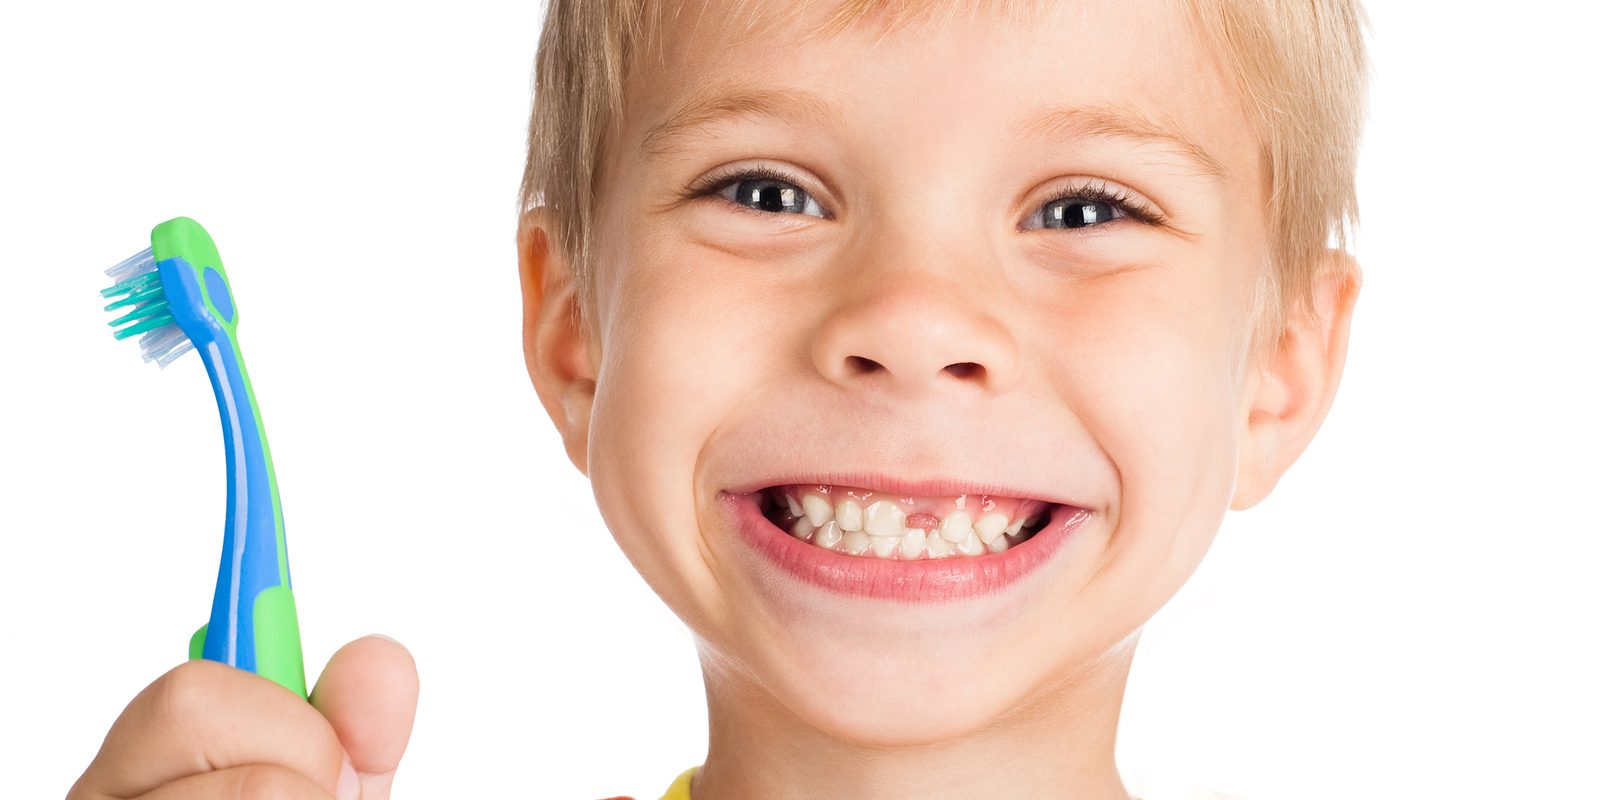 bigstock-smiley-boy-without-one-teeth-w-17340563-1600x800.jpg